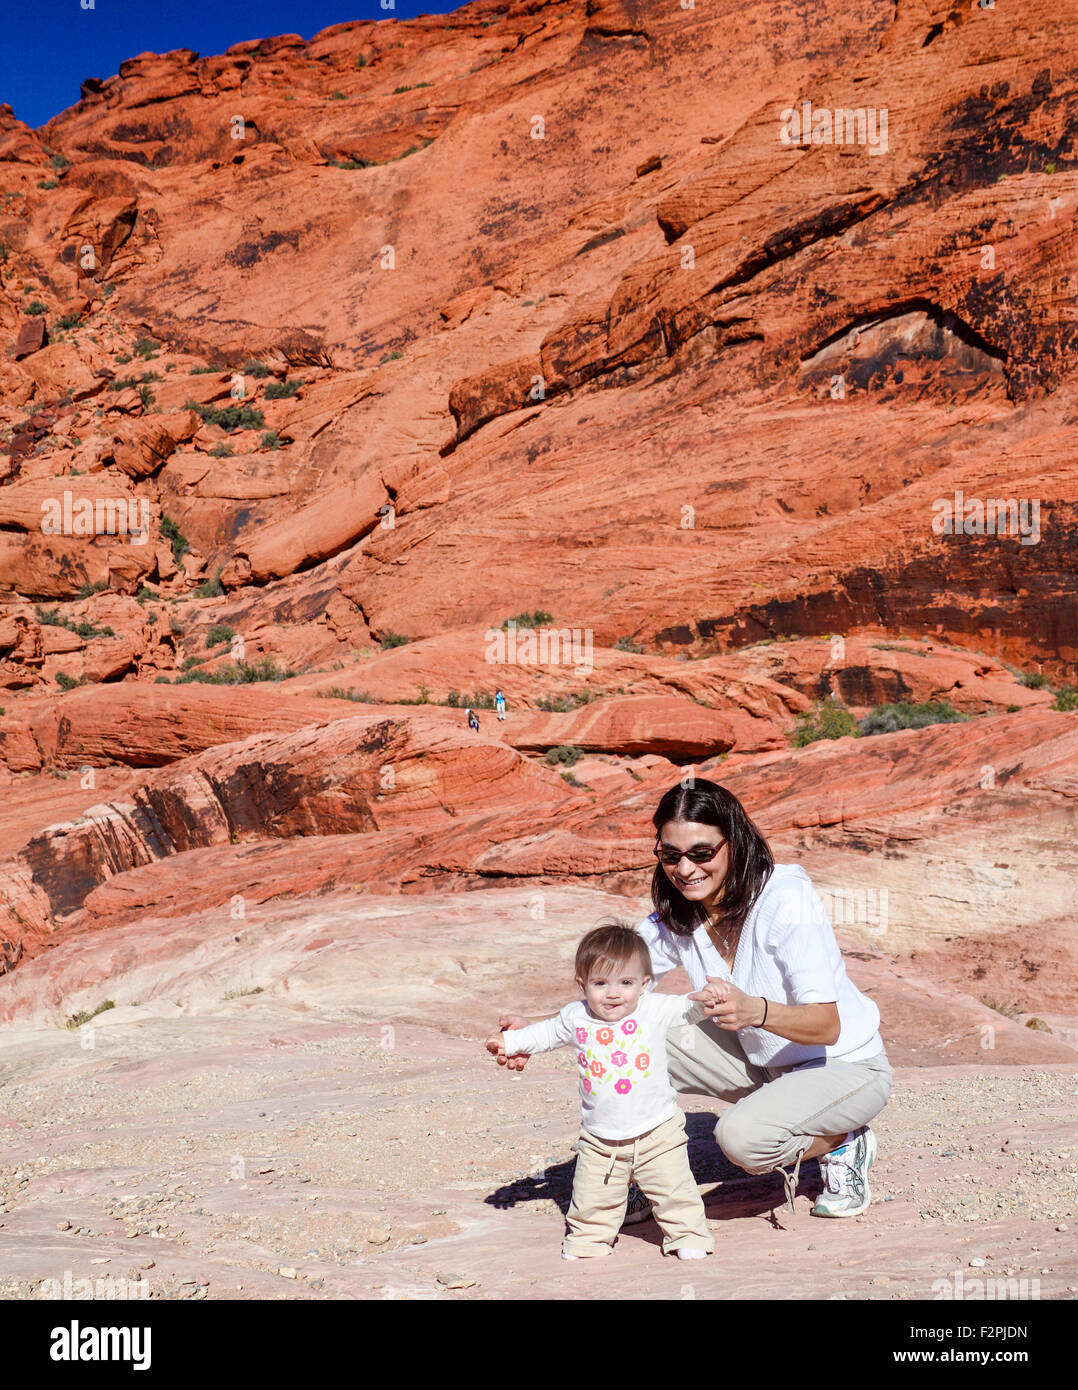 Mother and child at Red Rock Canyon National Conservation Area, about 20 miles from Las Vegas - Stock Image